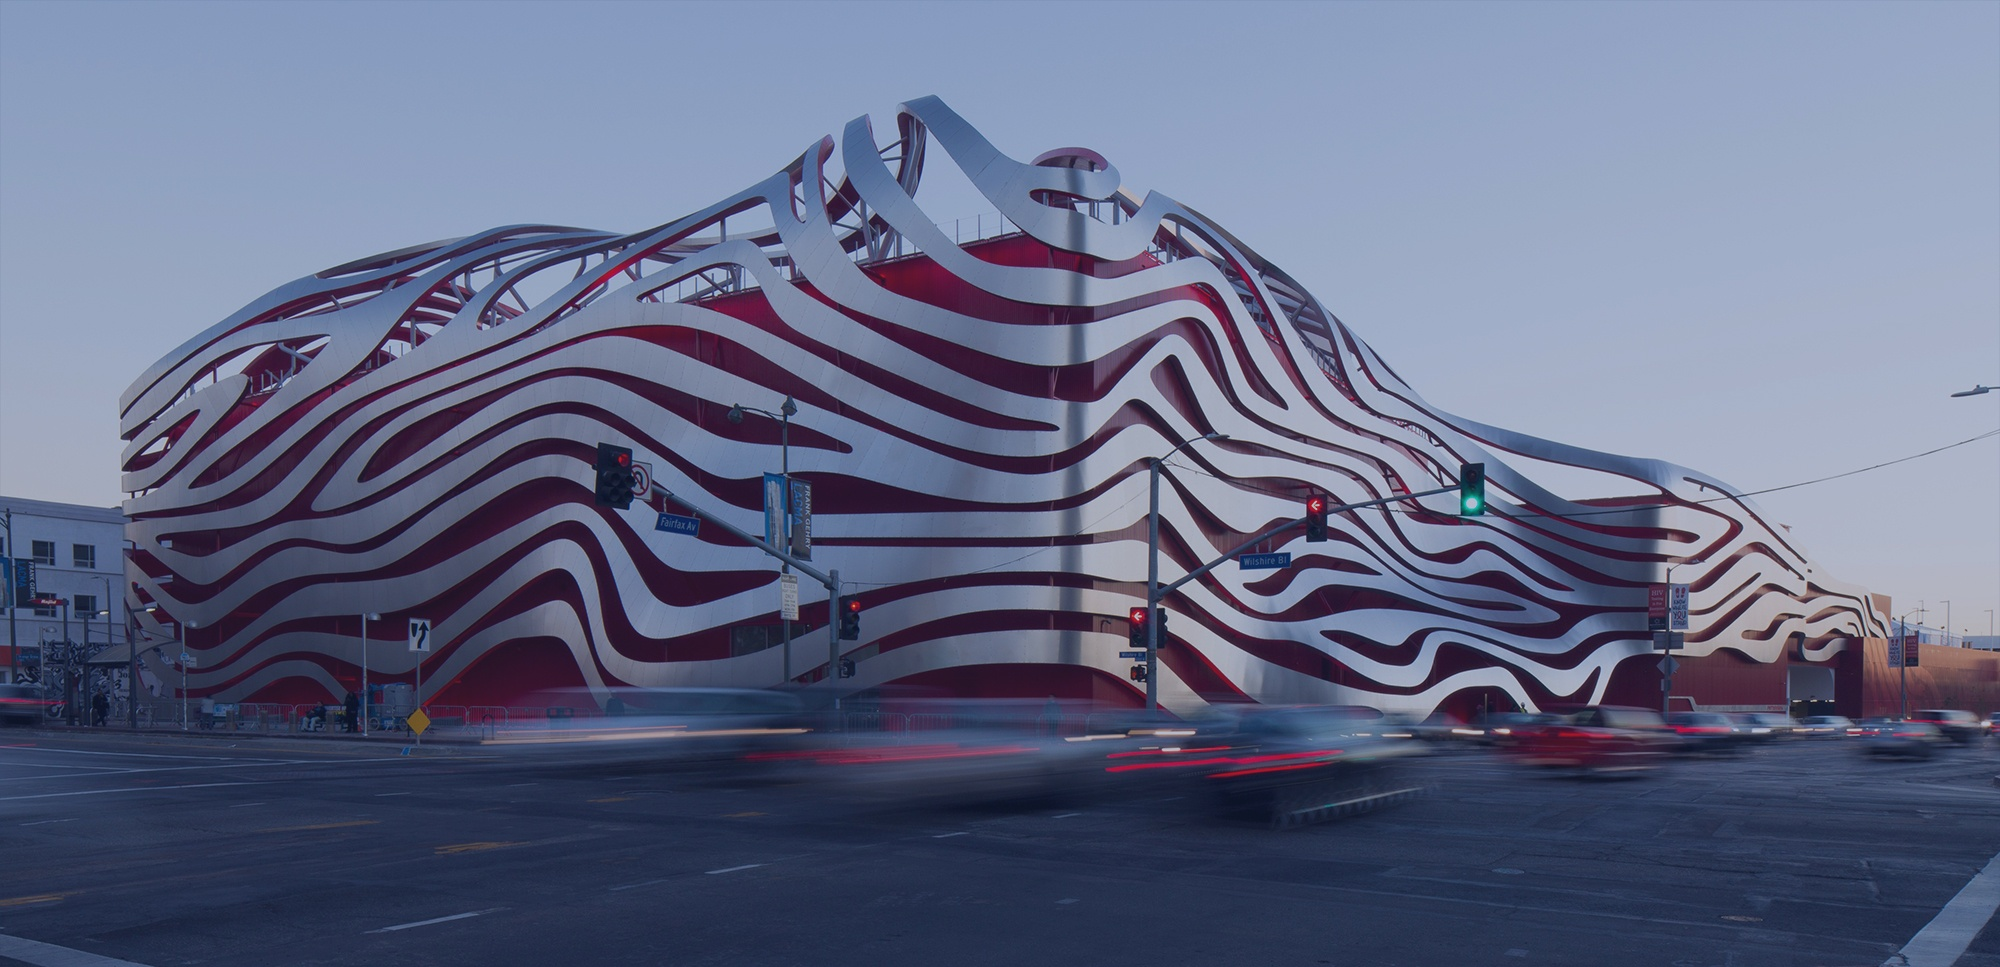 Petersen_Automotive_Museum2.jpg